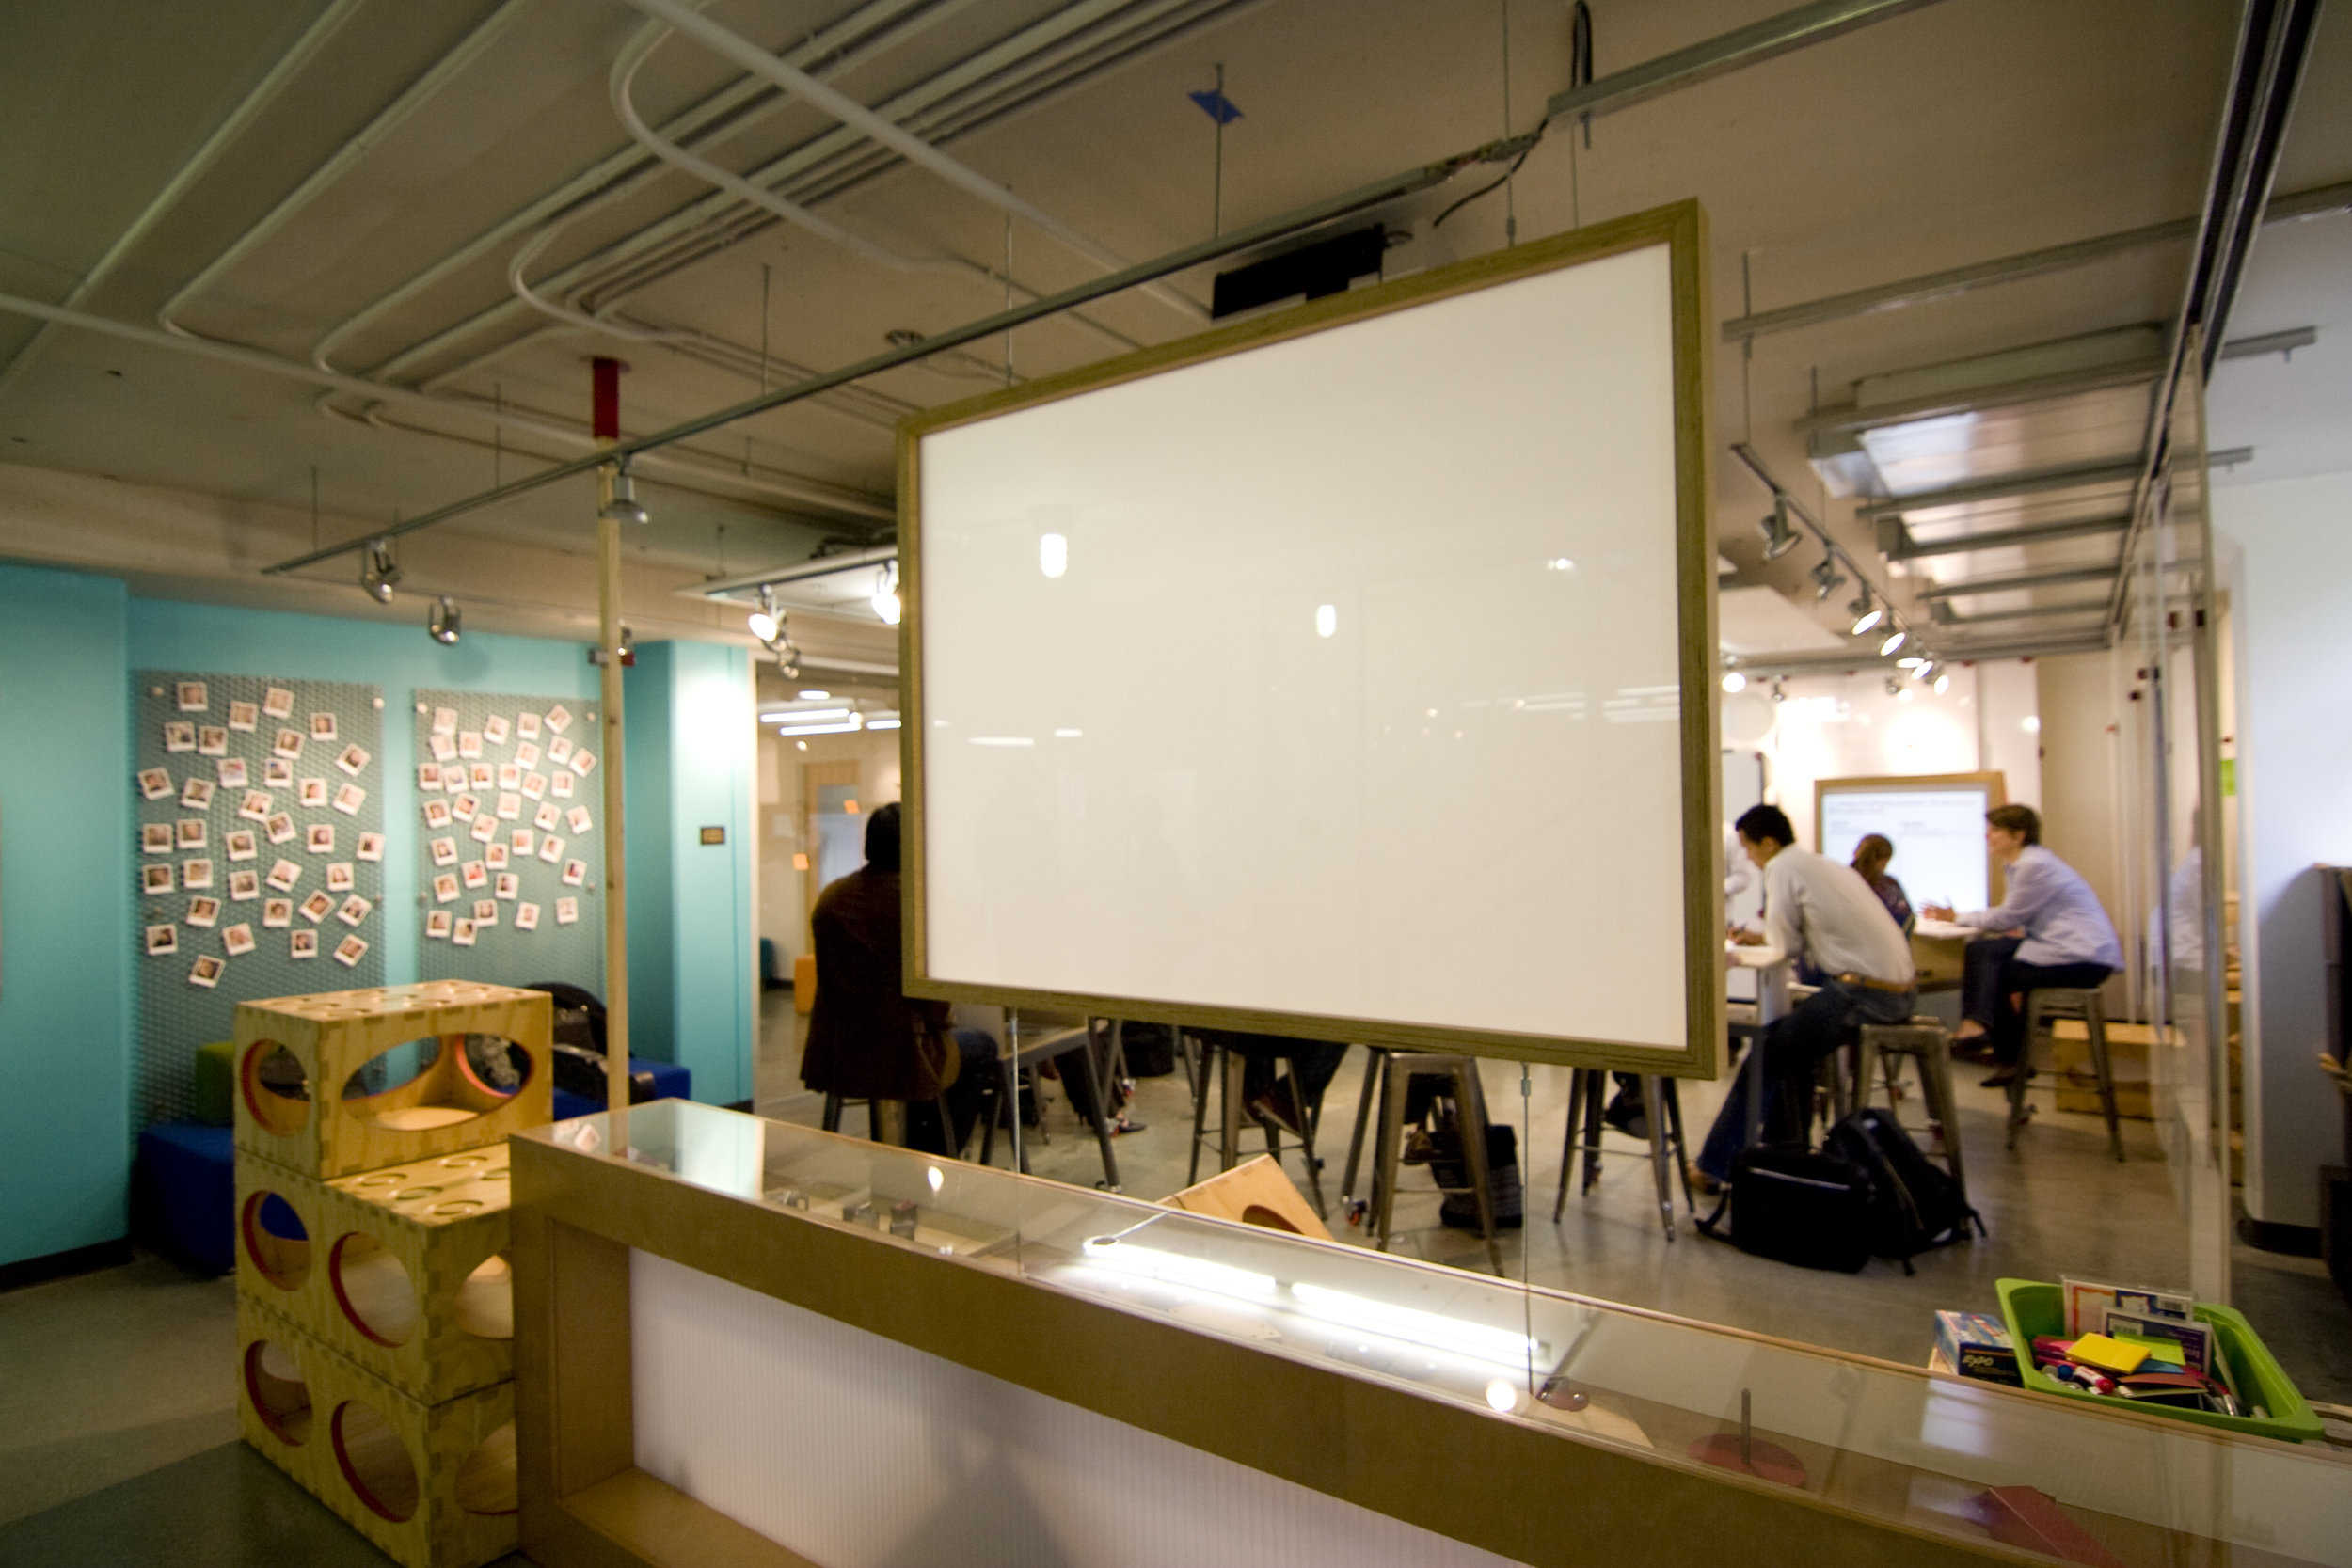 Another projection screen, this one hanging from the ceiling and meant to be viewed from both sides.